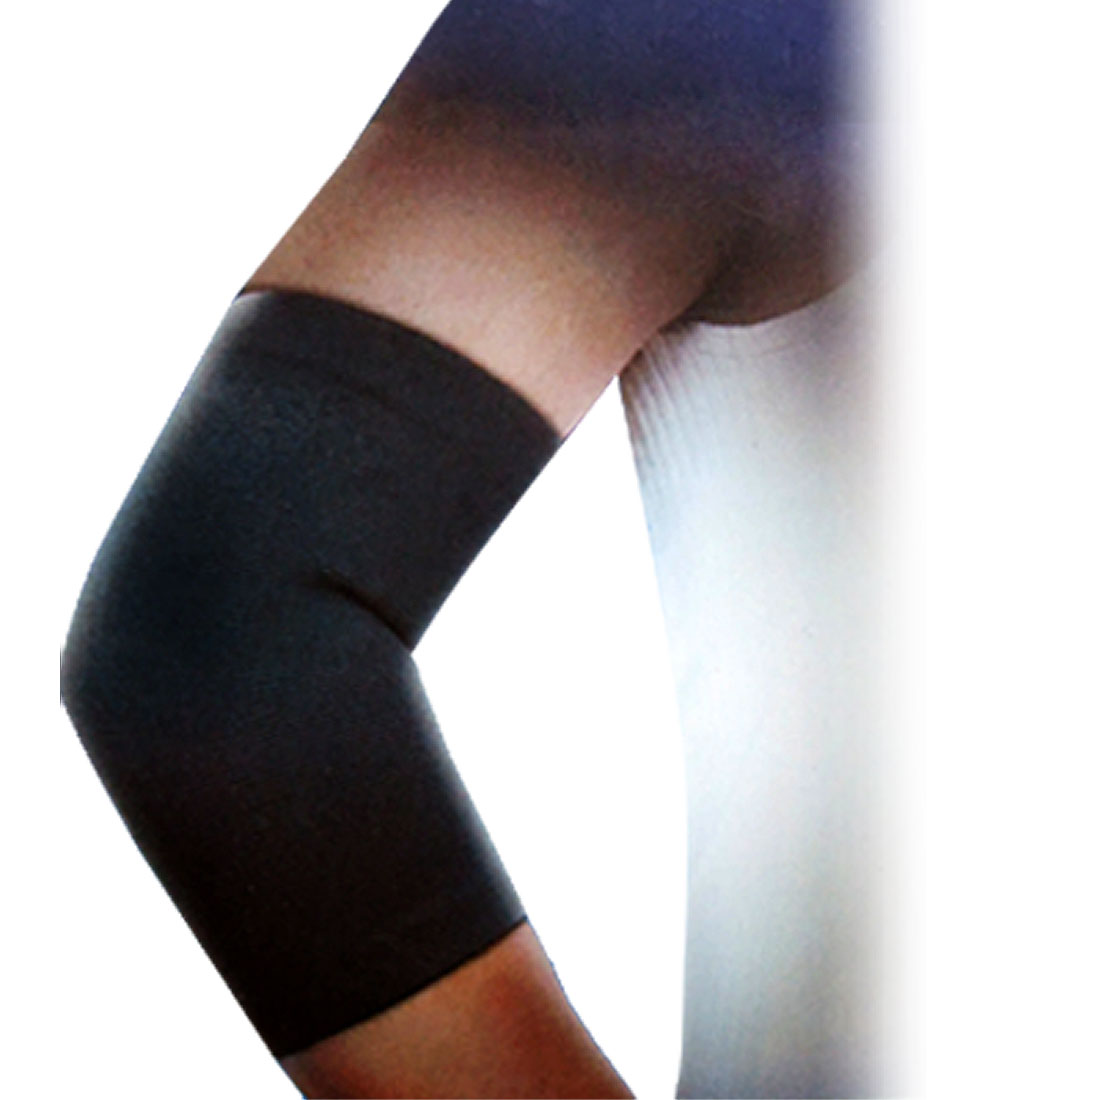 Unique Bargains Breathable Fitting Athletic Elbow Support Sleeve Band Brace Wrap Black